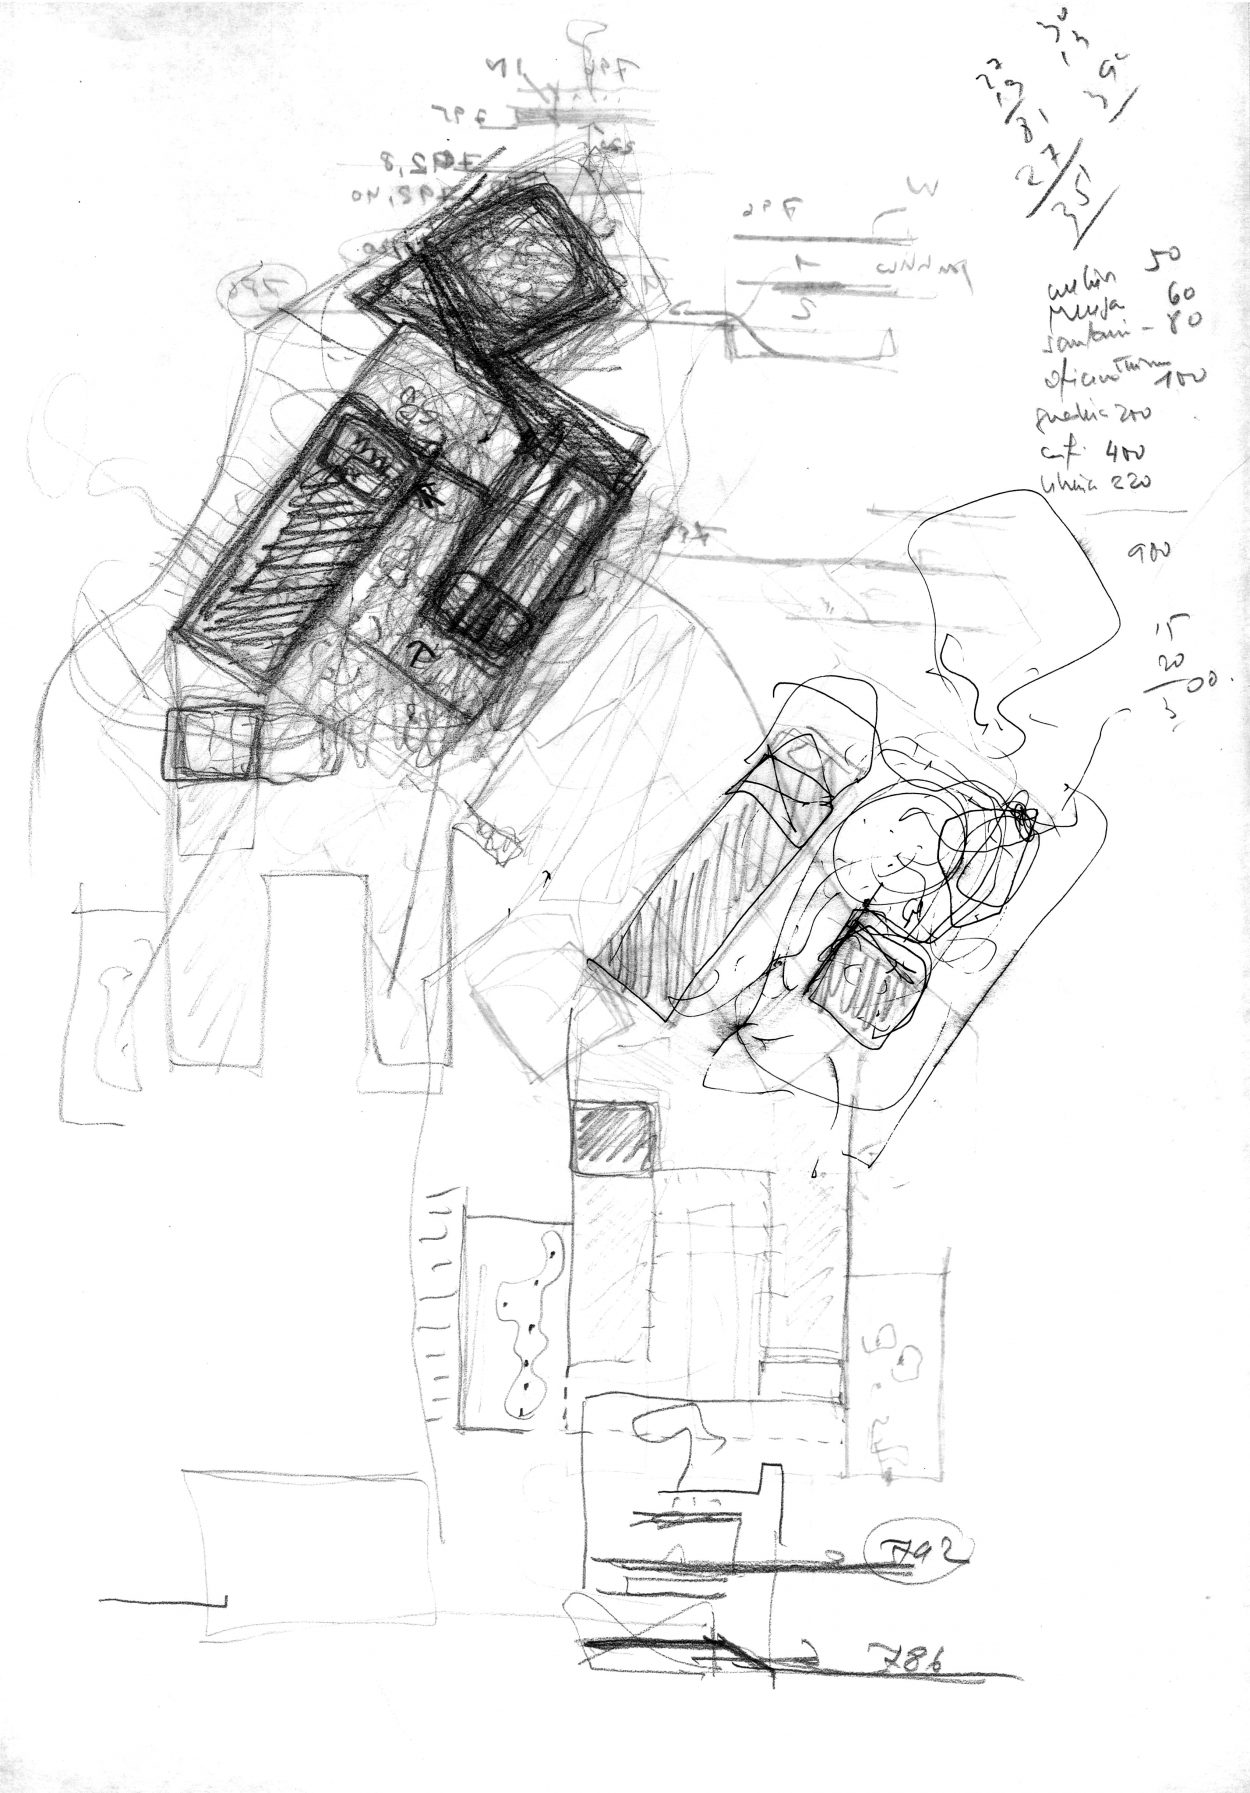 """Elevated Platform"", sketch by Juan Domingo Santos, 2010. Álvaro Siza Archive. From the curator: The working relationship between Álvaro Siza and Spanish architect Juan Domingo Santos was so symbiotic that Siza once signed this sketch as his own, a mistake which he later humbly corrected. It was Santos who had been the one to suggest breaking down the solid structure and opening it up to the Alhambra walls, creating a more permeable courtyard between the garden platforms and the entryway. This became a crucial turning point for the project. They worked together in order to formalize a sort of conceptual pylon (or gateway) toward the square, in the shape of a horseshoe, reminiscent of the Alhambra's ""Gate of the Seven Floors"" — one that had long been sublimated into Siza's volumetric and territorial representation. From a library (1988–95), to a church (1990–97), and now a visitors' centre (2010–20), this modern-day fortress and its evolution served as entry gates to the architect's knowledge, the divine, and the 21st century."